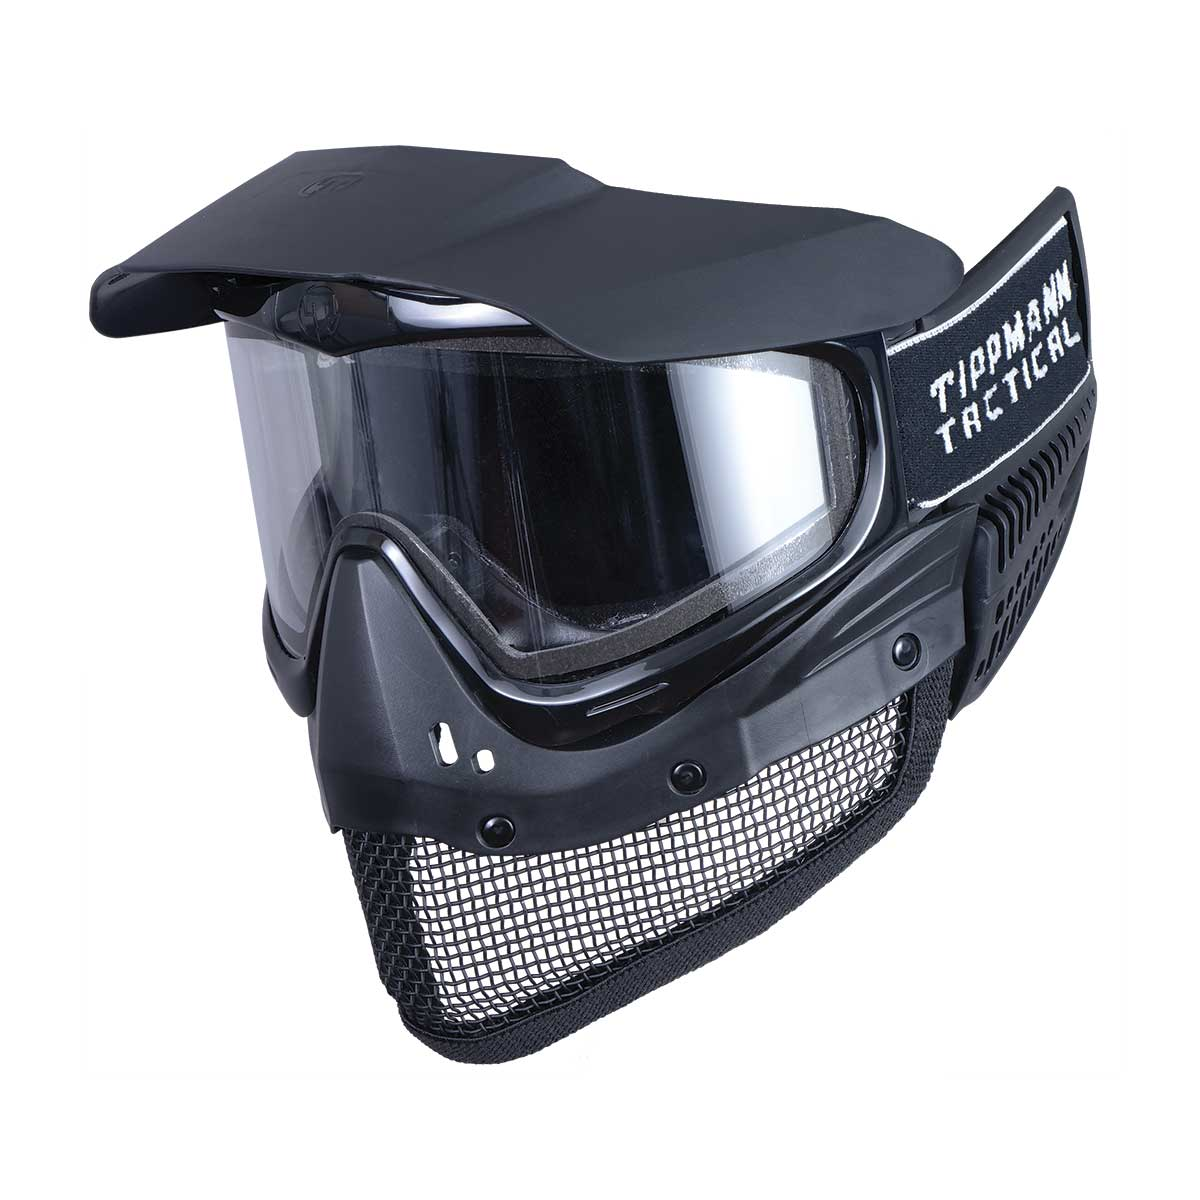 Tippmann Tactical Mesh Airsoft Goggle Thermal by Tippmann